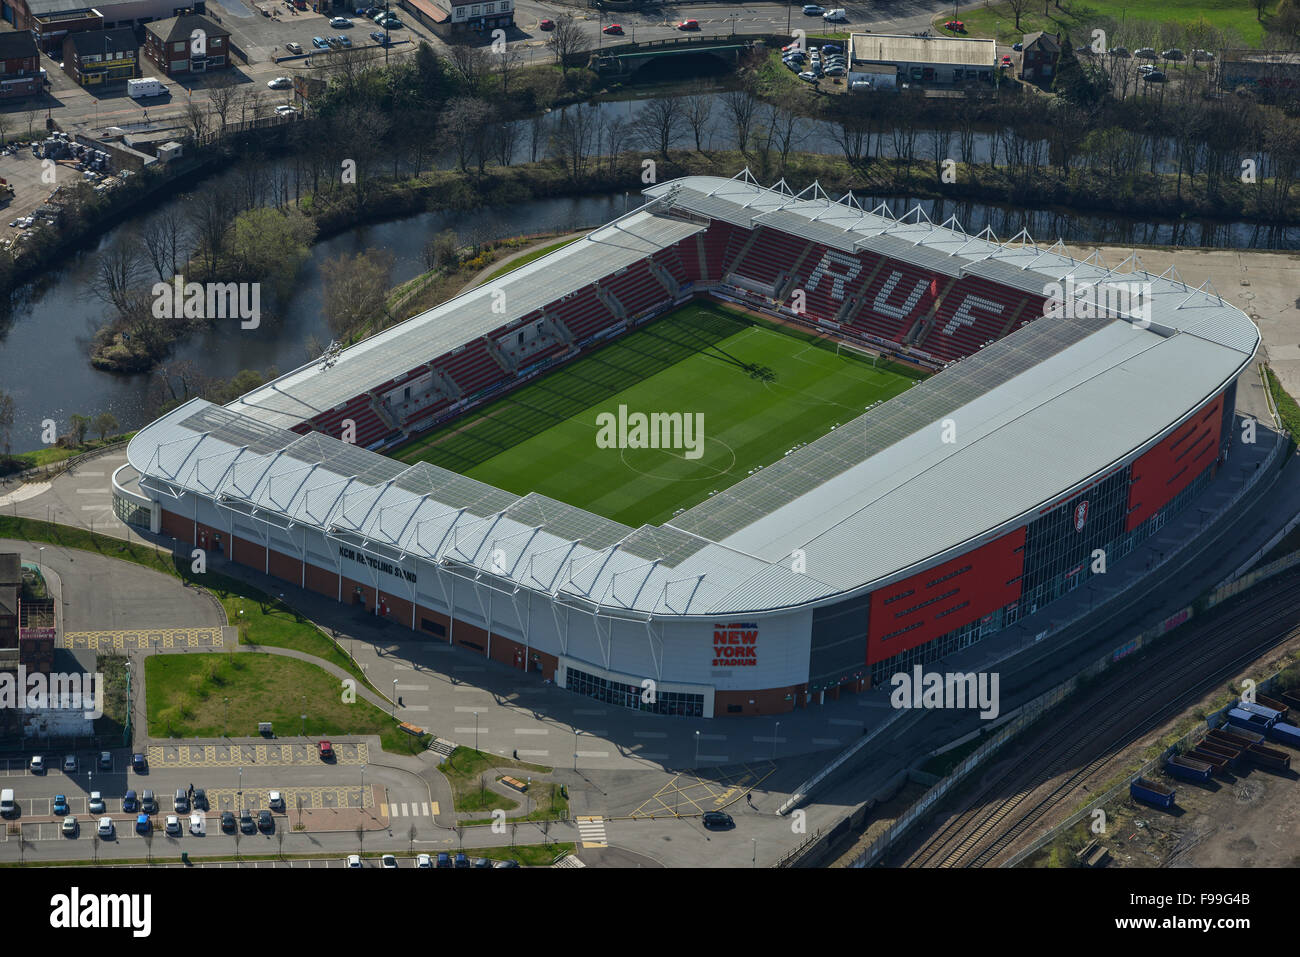 An aerial view of the New York Stadium, home of Rotherham United FC - Stock Image